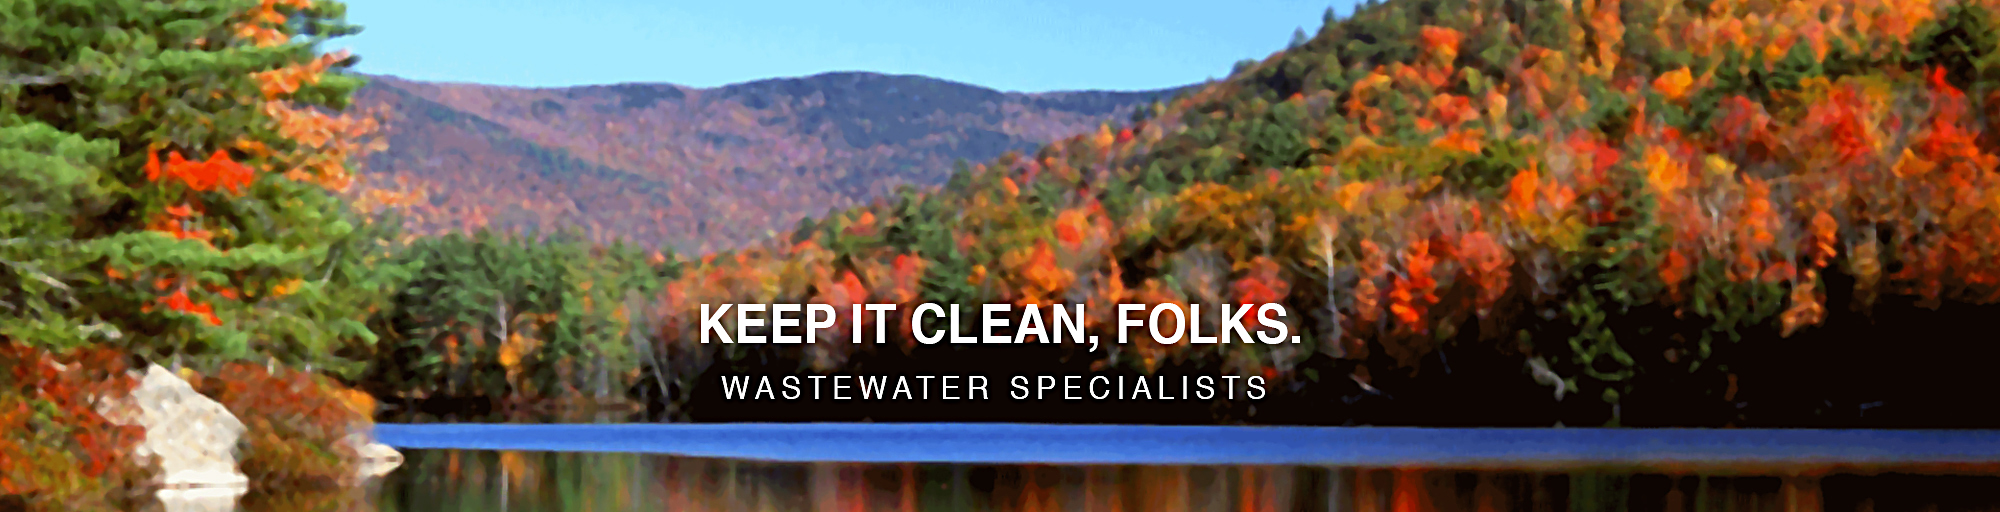 portable restroom rental solution, wastewater specialists, bennington vt, new York state